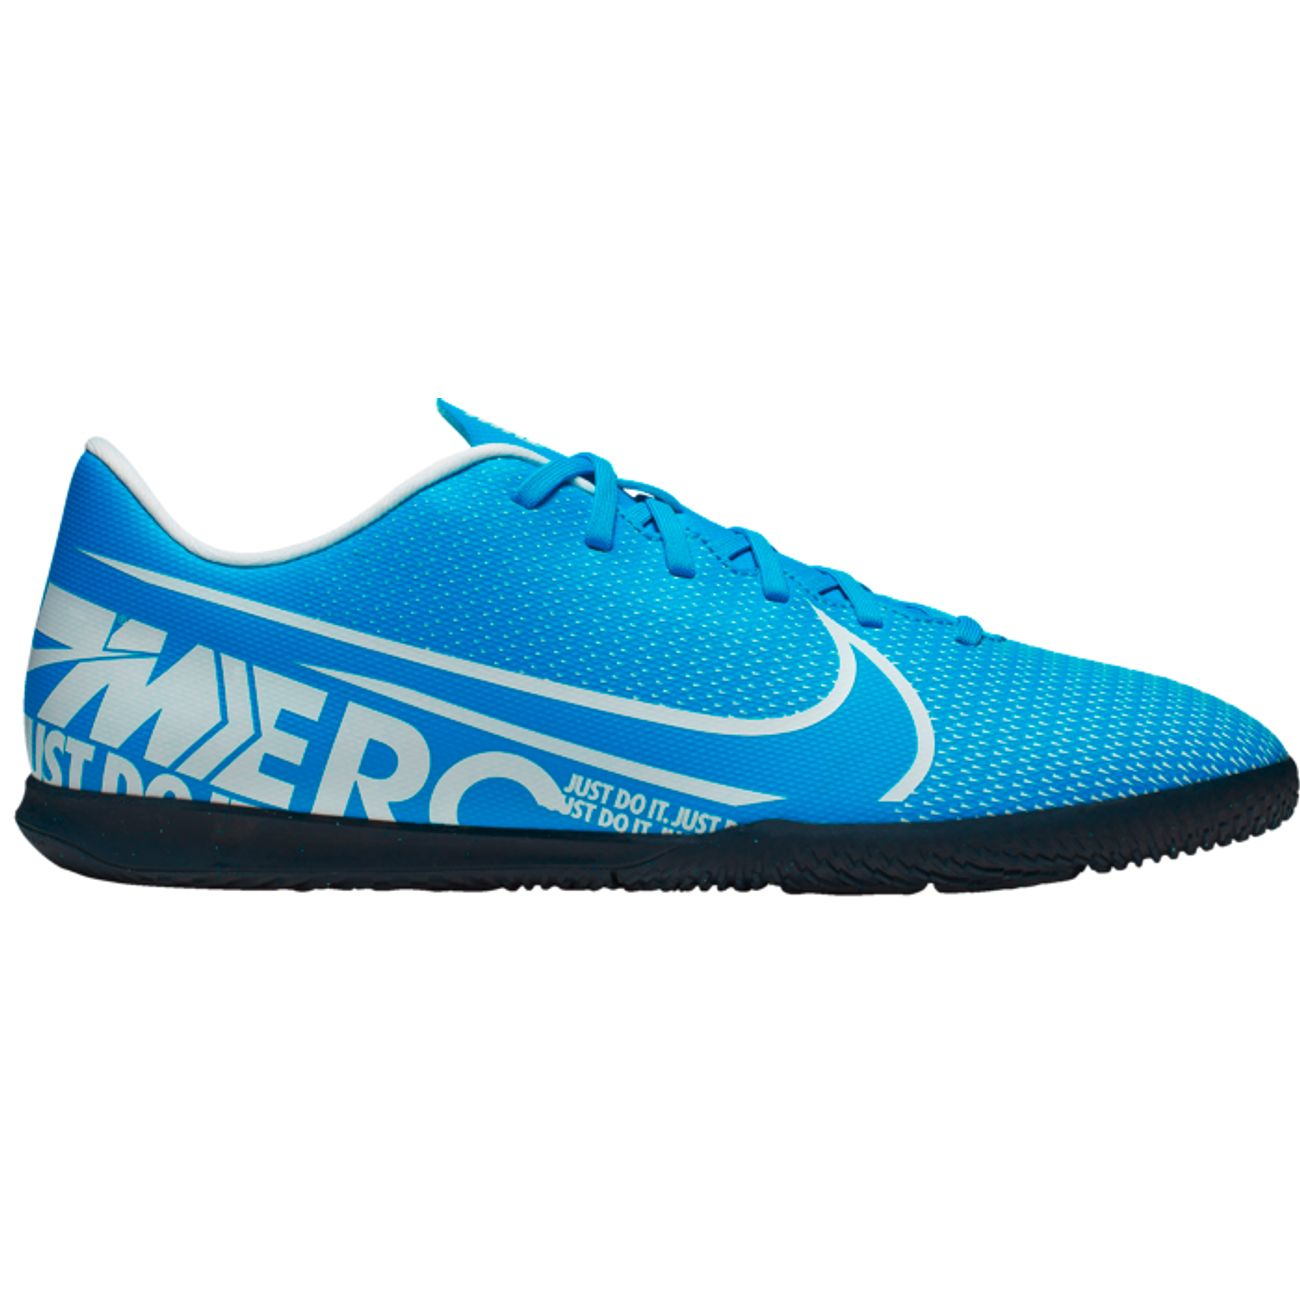 CHAUSSURES BASSES Football mixte NIKE VAPOR 13 CLUB IC